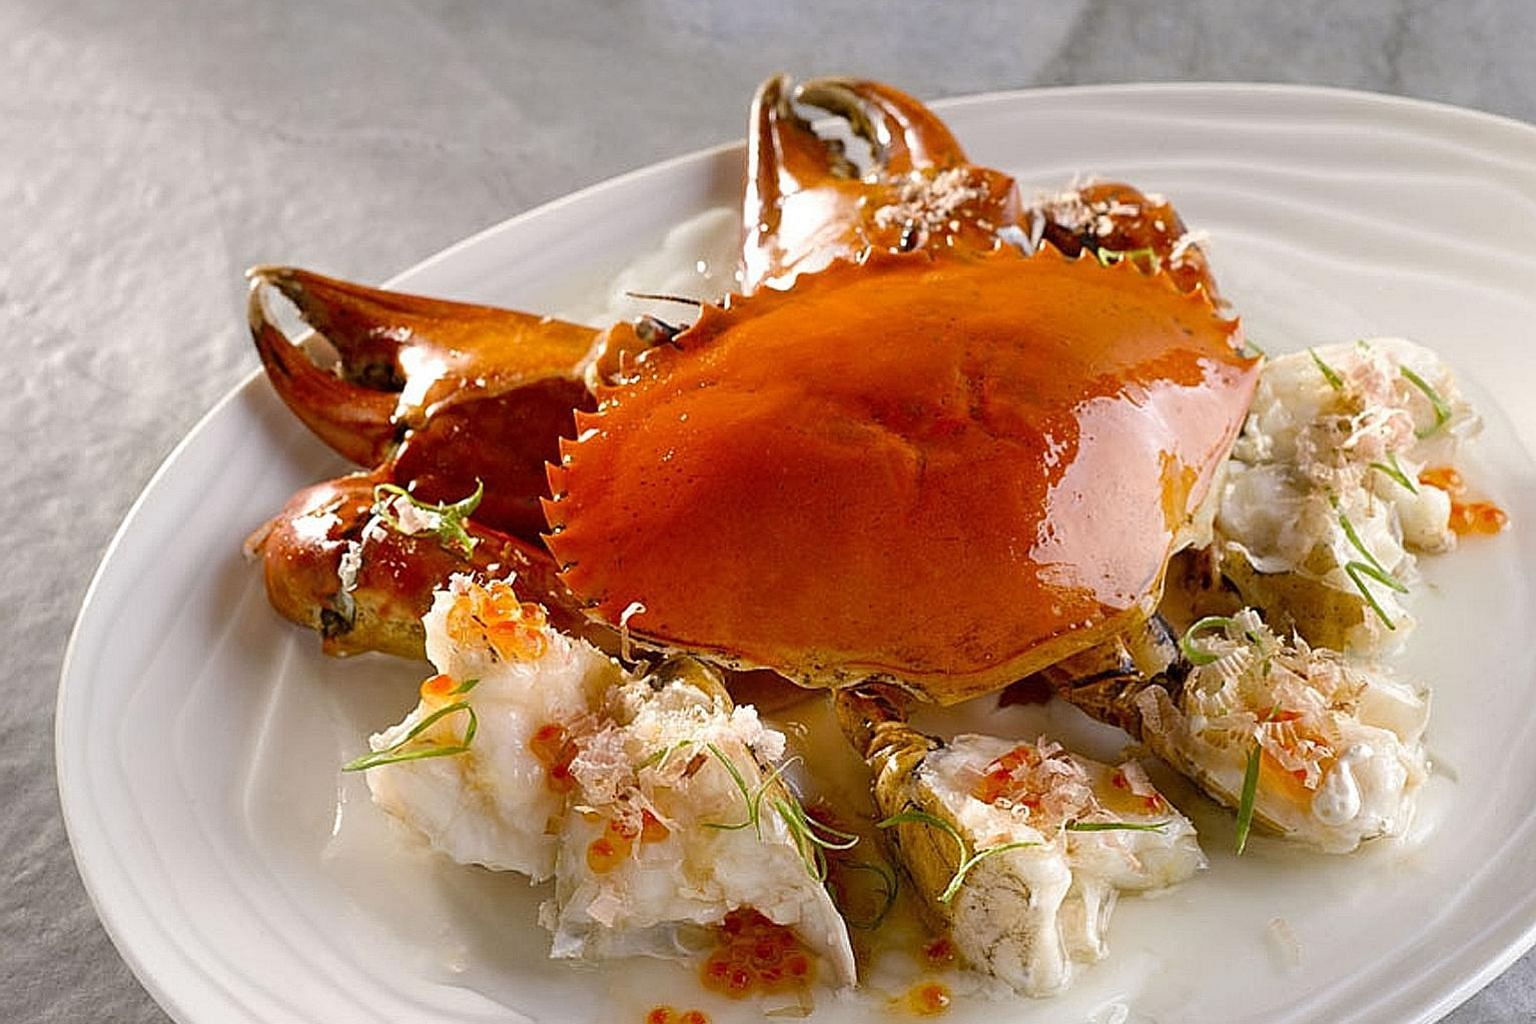 The batter in the Crispy Bull Frog With Ginger (left) is light and crispy, while the Chairman's Crab (above) is lightly seasoned, allowing the shelfish's natural sweetness to come through.